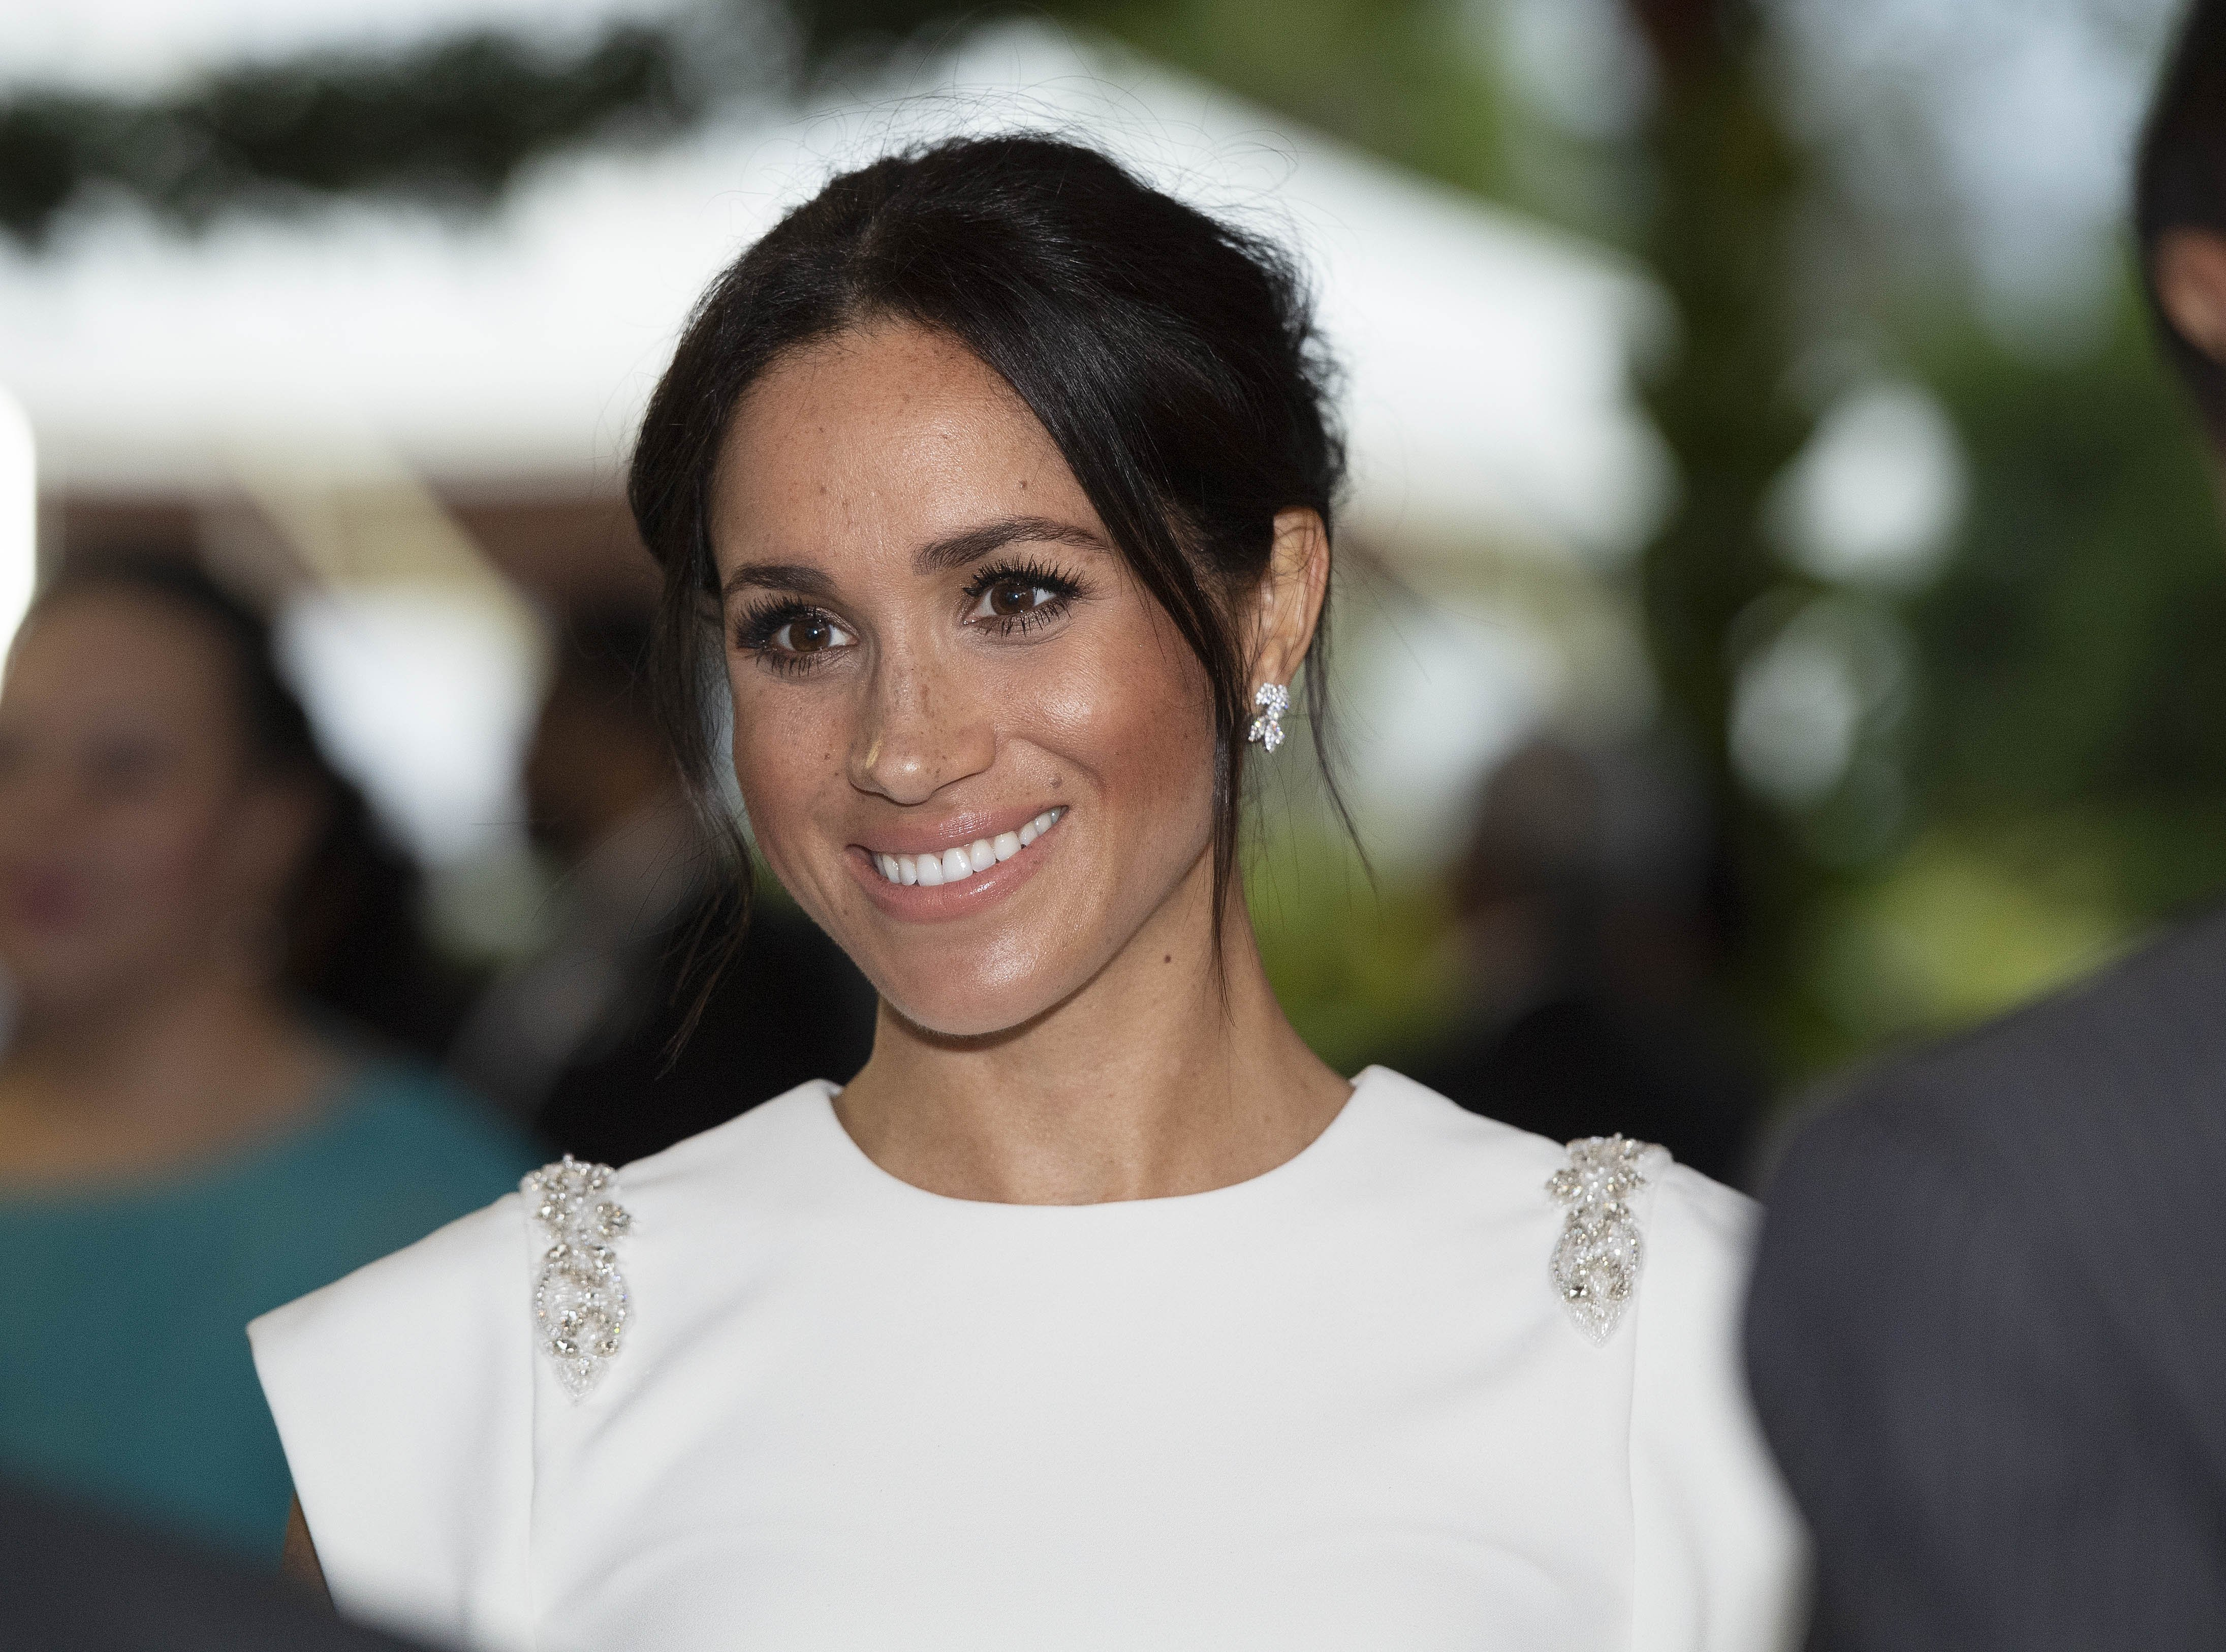 Image Credits: Getty Images / Paul Edwards - Pool | Meghan, Duchess of Sussex attends a state dinner at the Royal Residence.